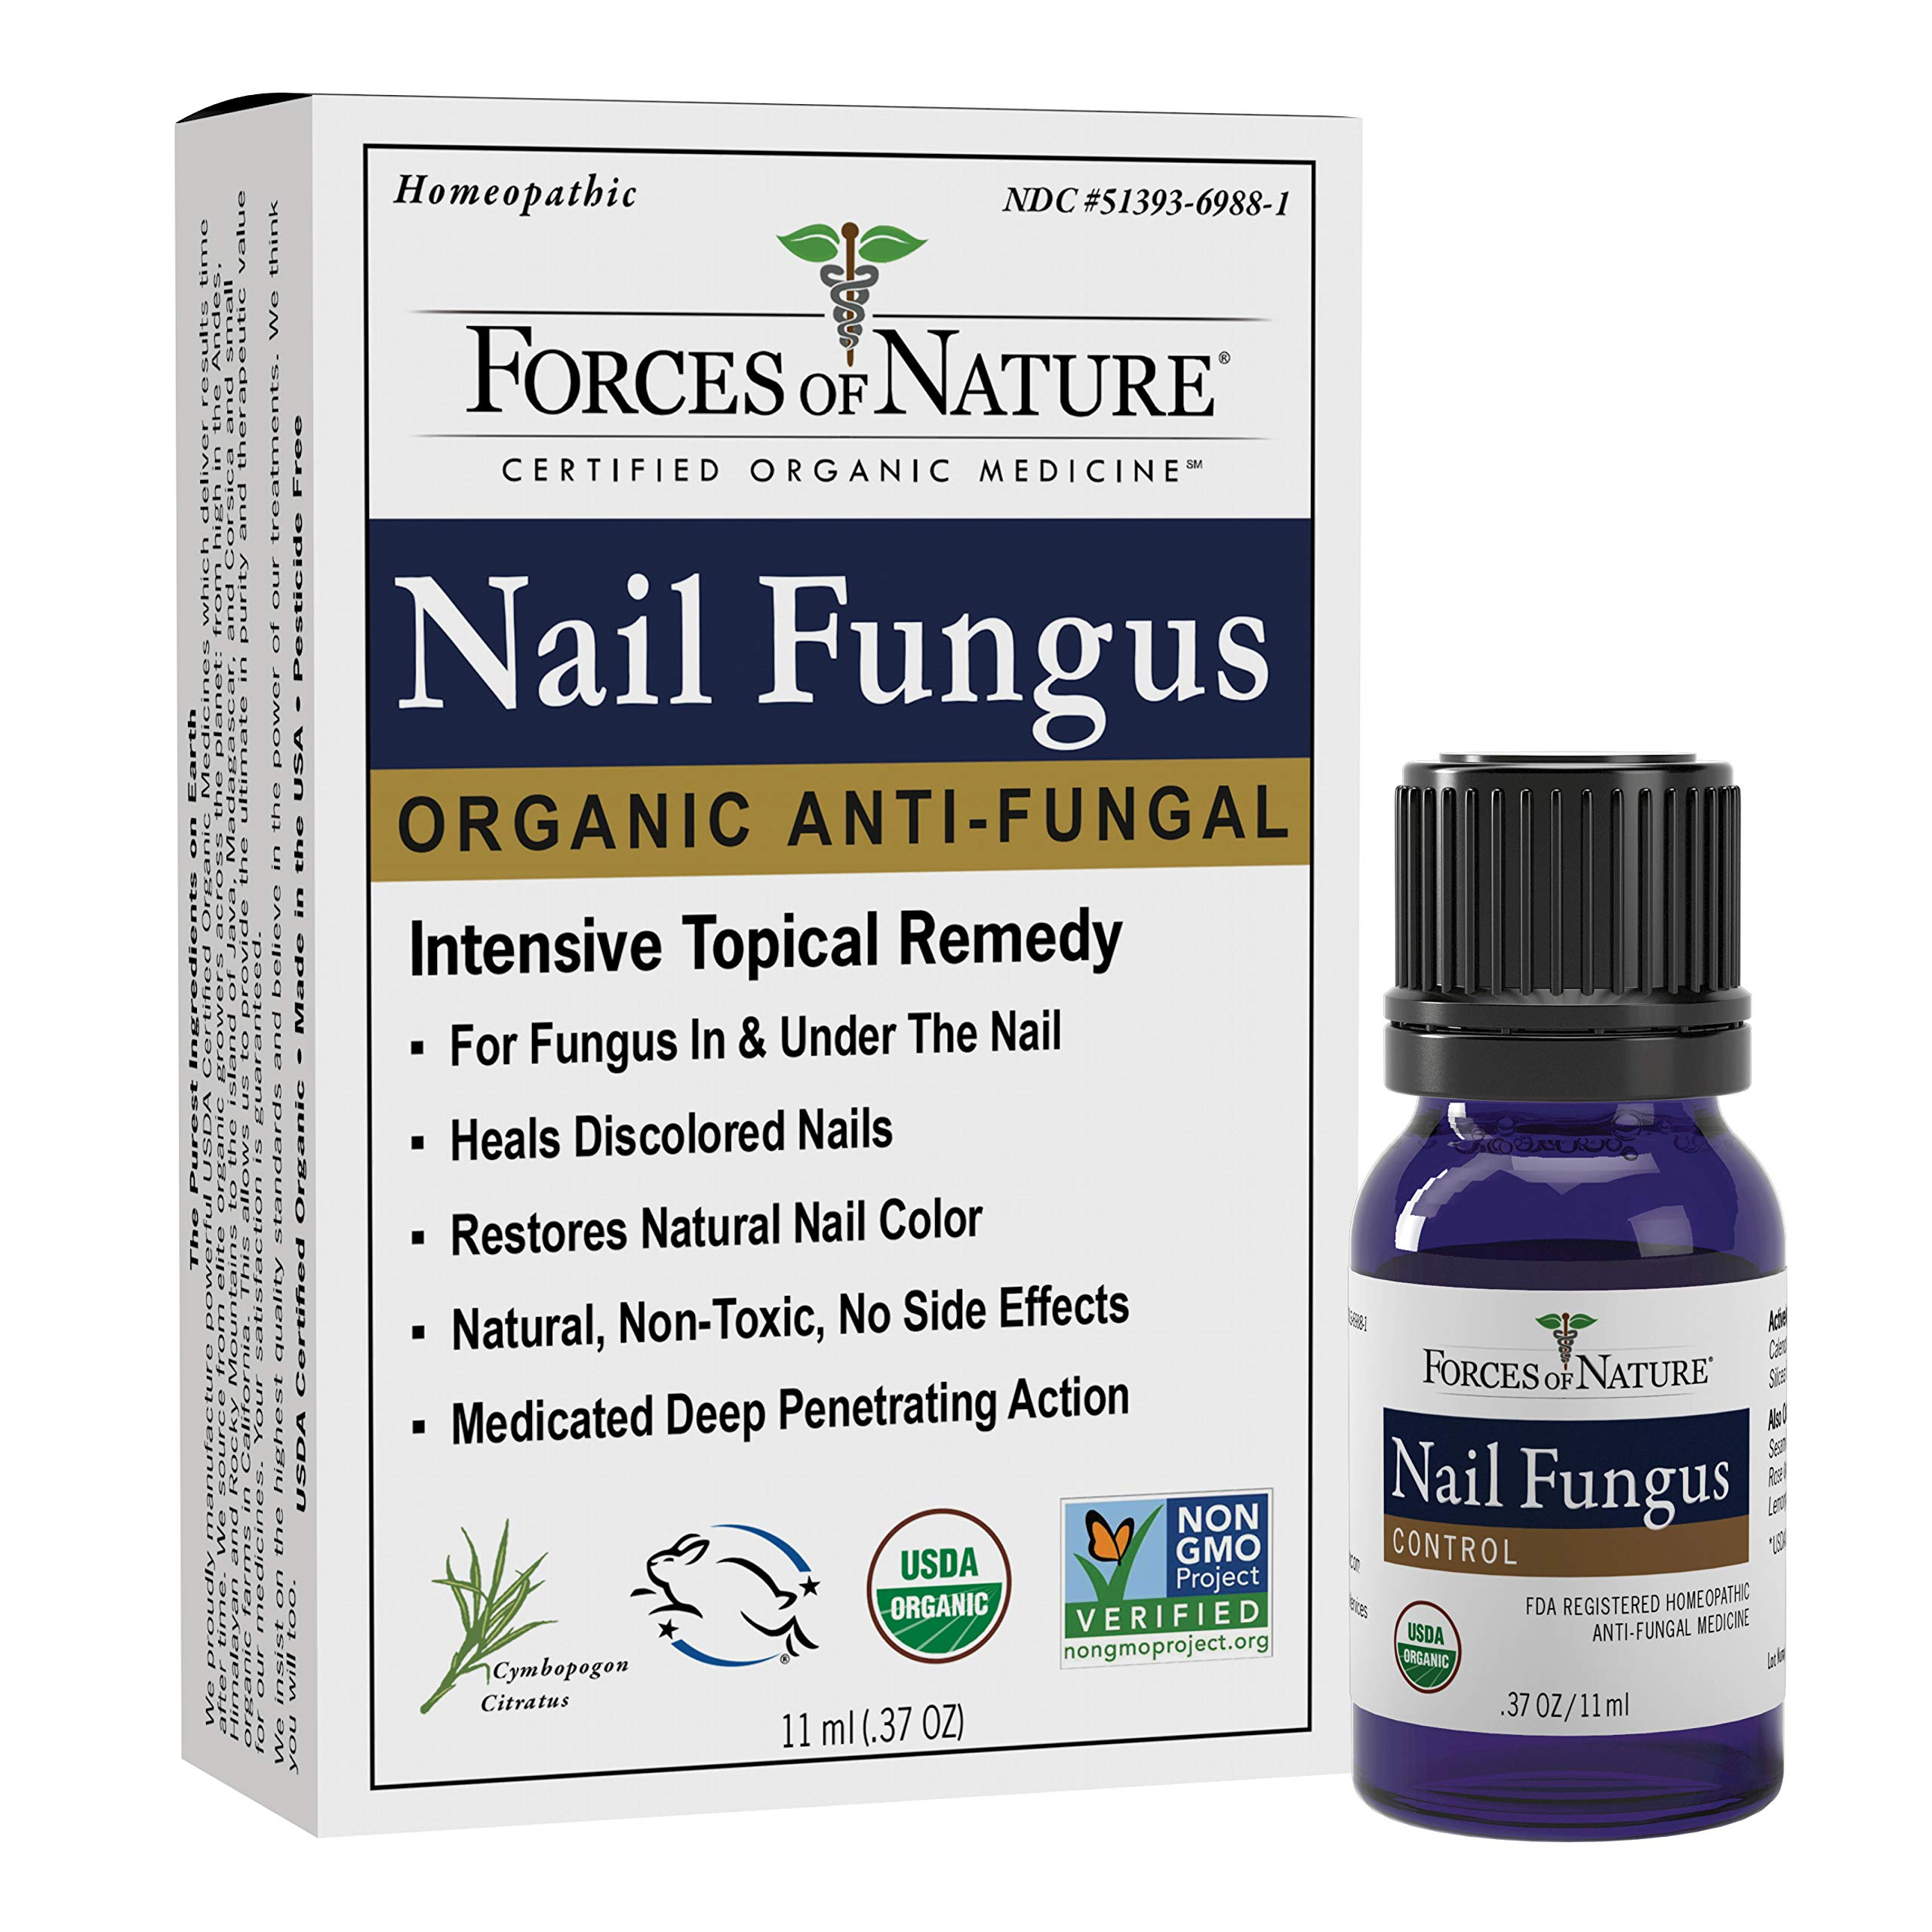 Forces of Nature -Natural, Organic Nail Fungus Treatment (11ml) Non GMO, No Harmful Chemicals, Nontoxic -Fight Damaged, Cracked, Brittle, Discolored Yellow and black Toenails, Fingernails by Forces Of Nature